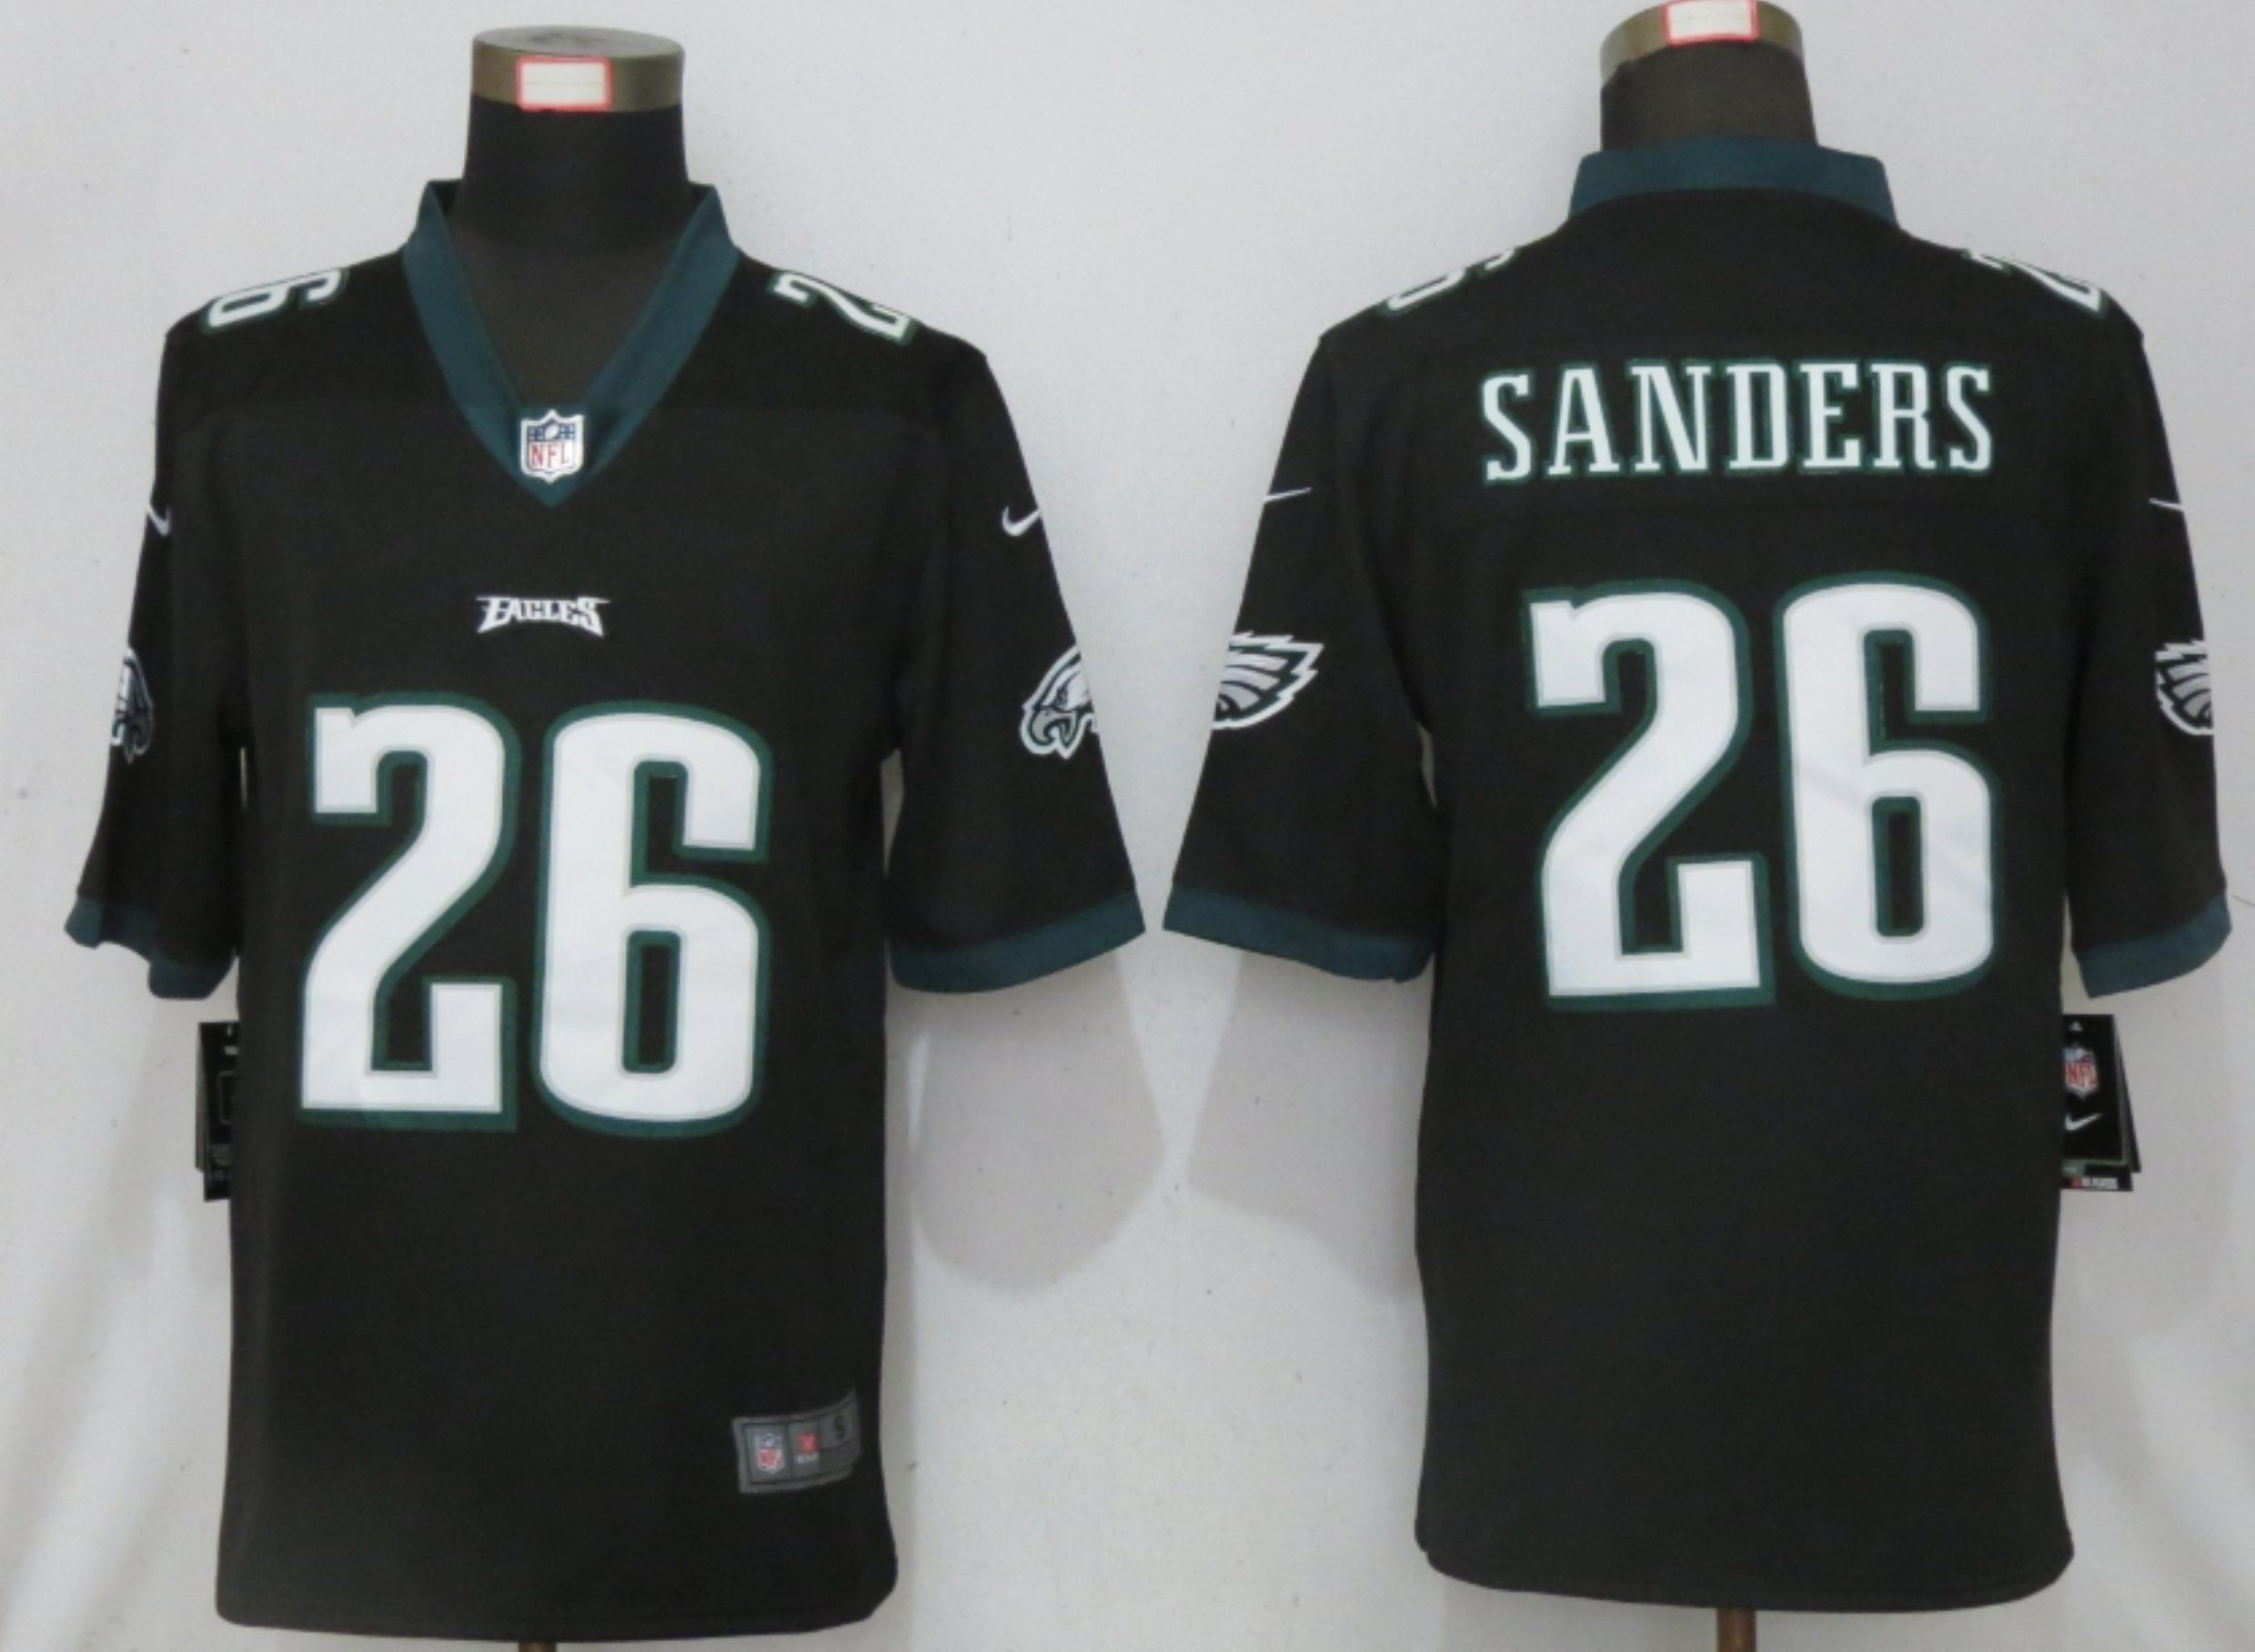 Wholesale Men Philadelphia Eagles 26 Sanders Black 2020 Vapor Untouchable Limited Nike NFL Jersey